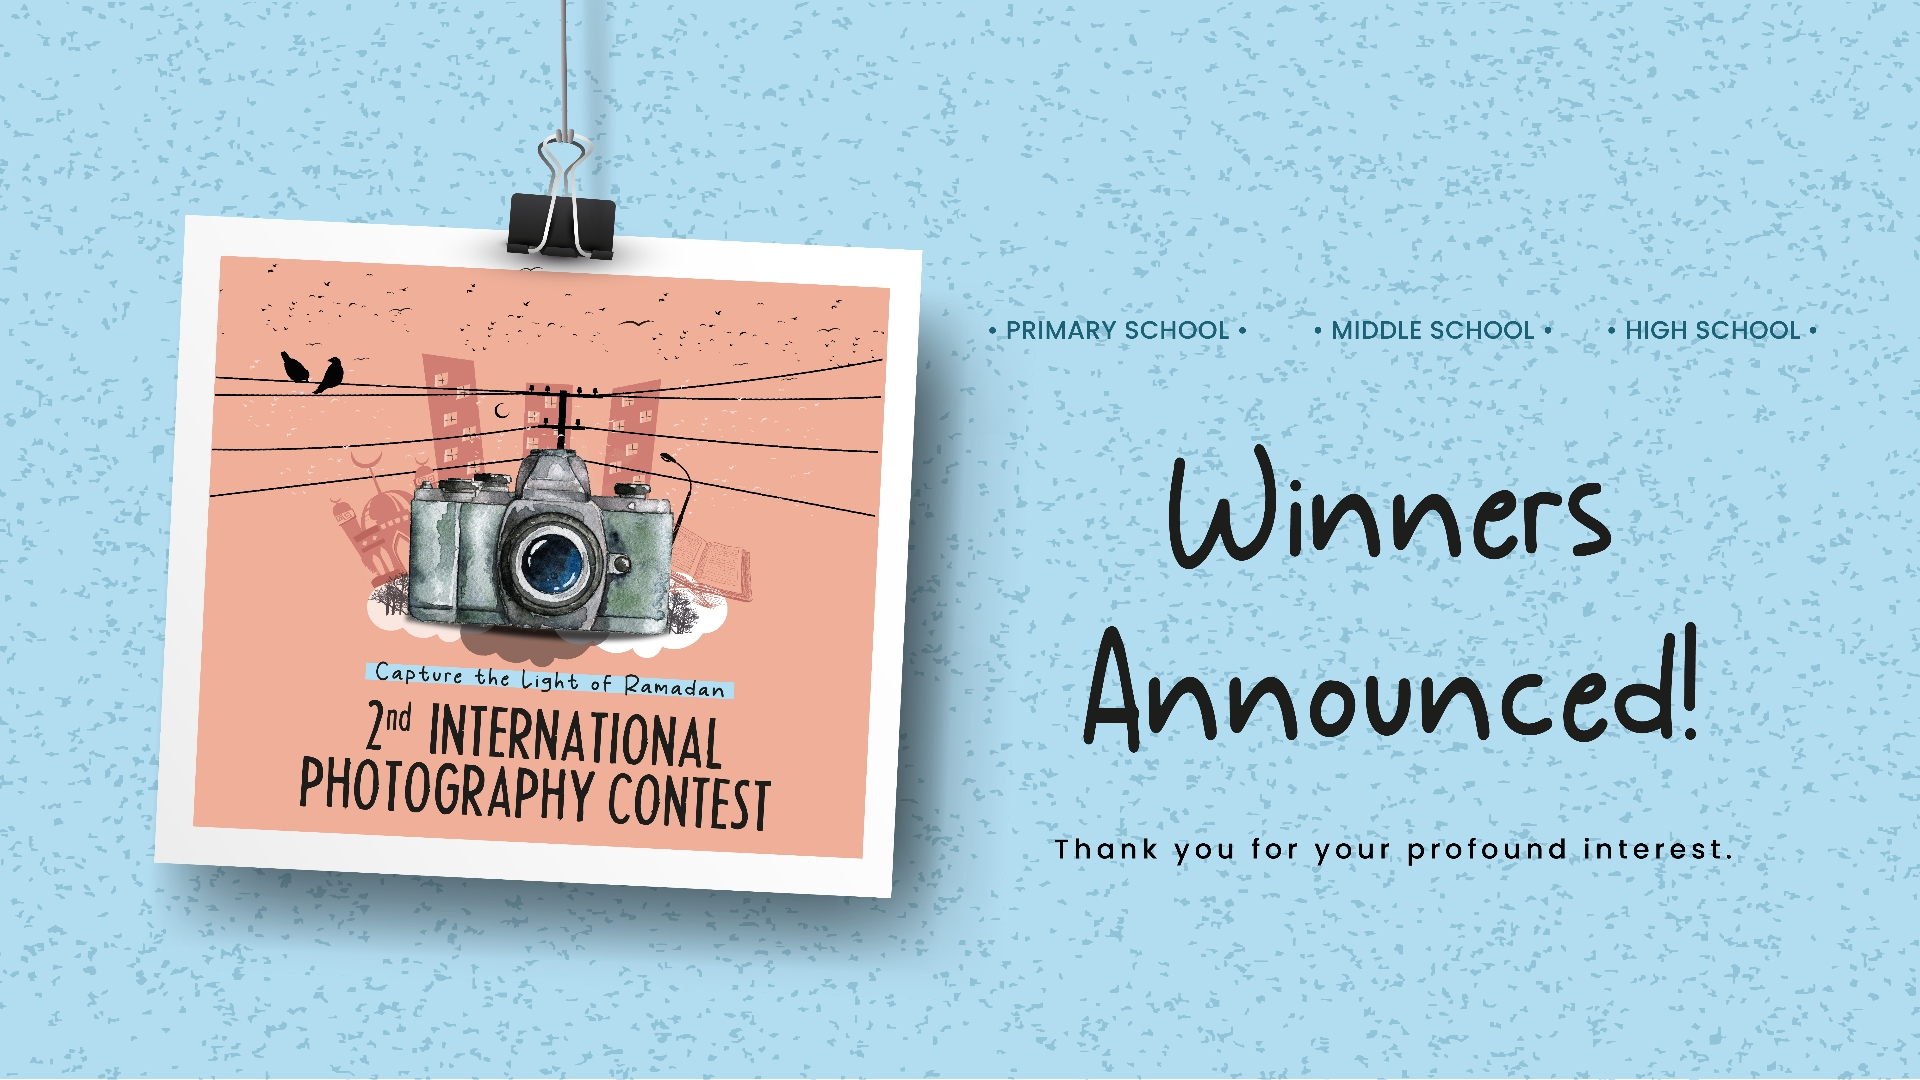 The Winners Of The 2nd International Capture The Light Of Ramadan Photography Contest Announced!